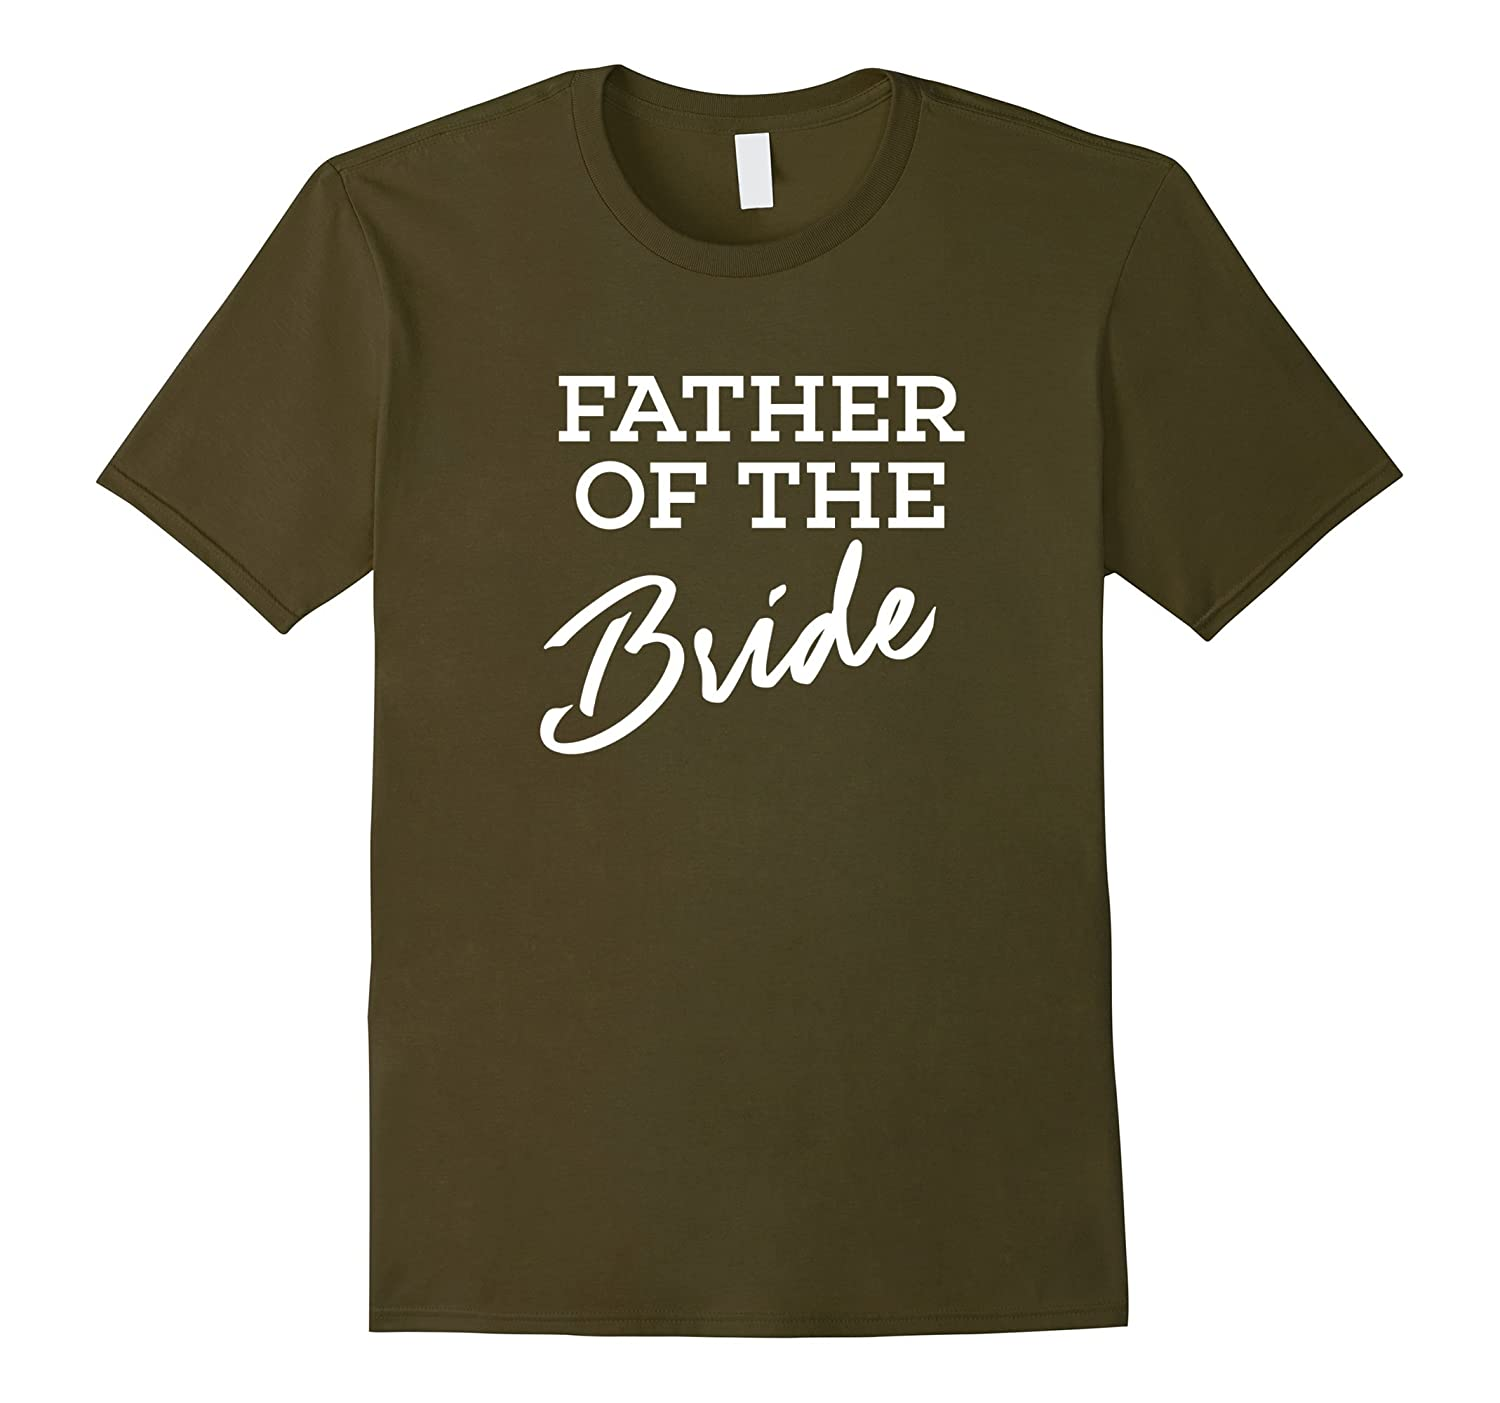 a66796e7 Father of the Bride – Wedding Bridal Party T Shirt for Dad-RT ...